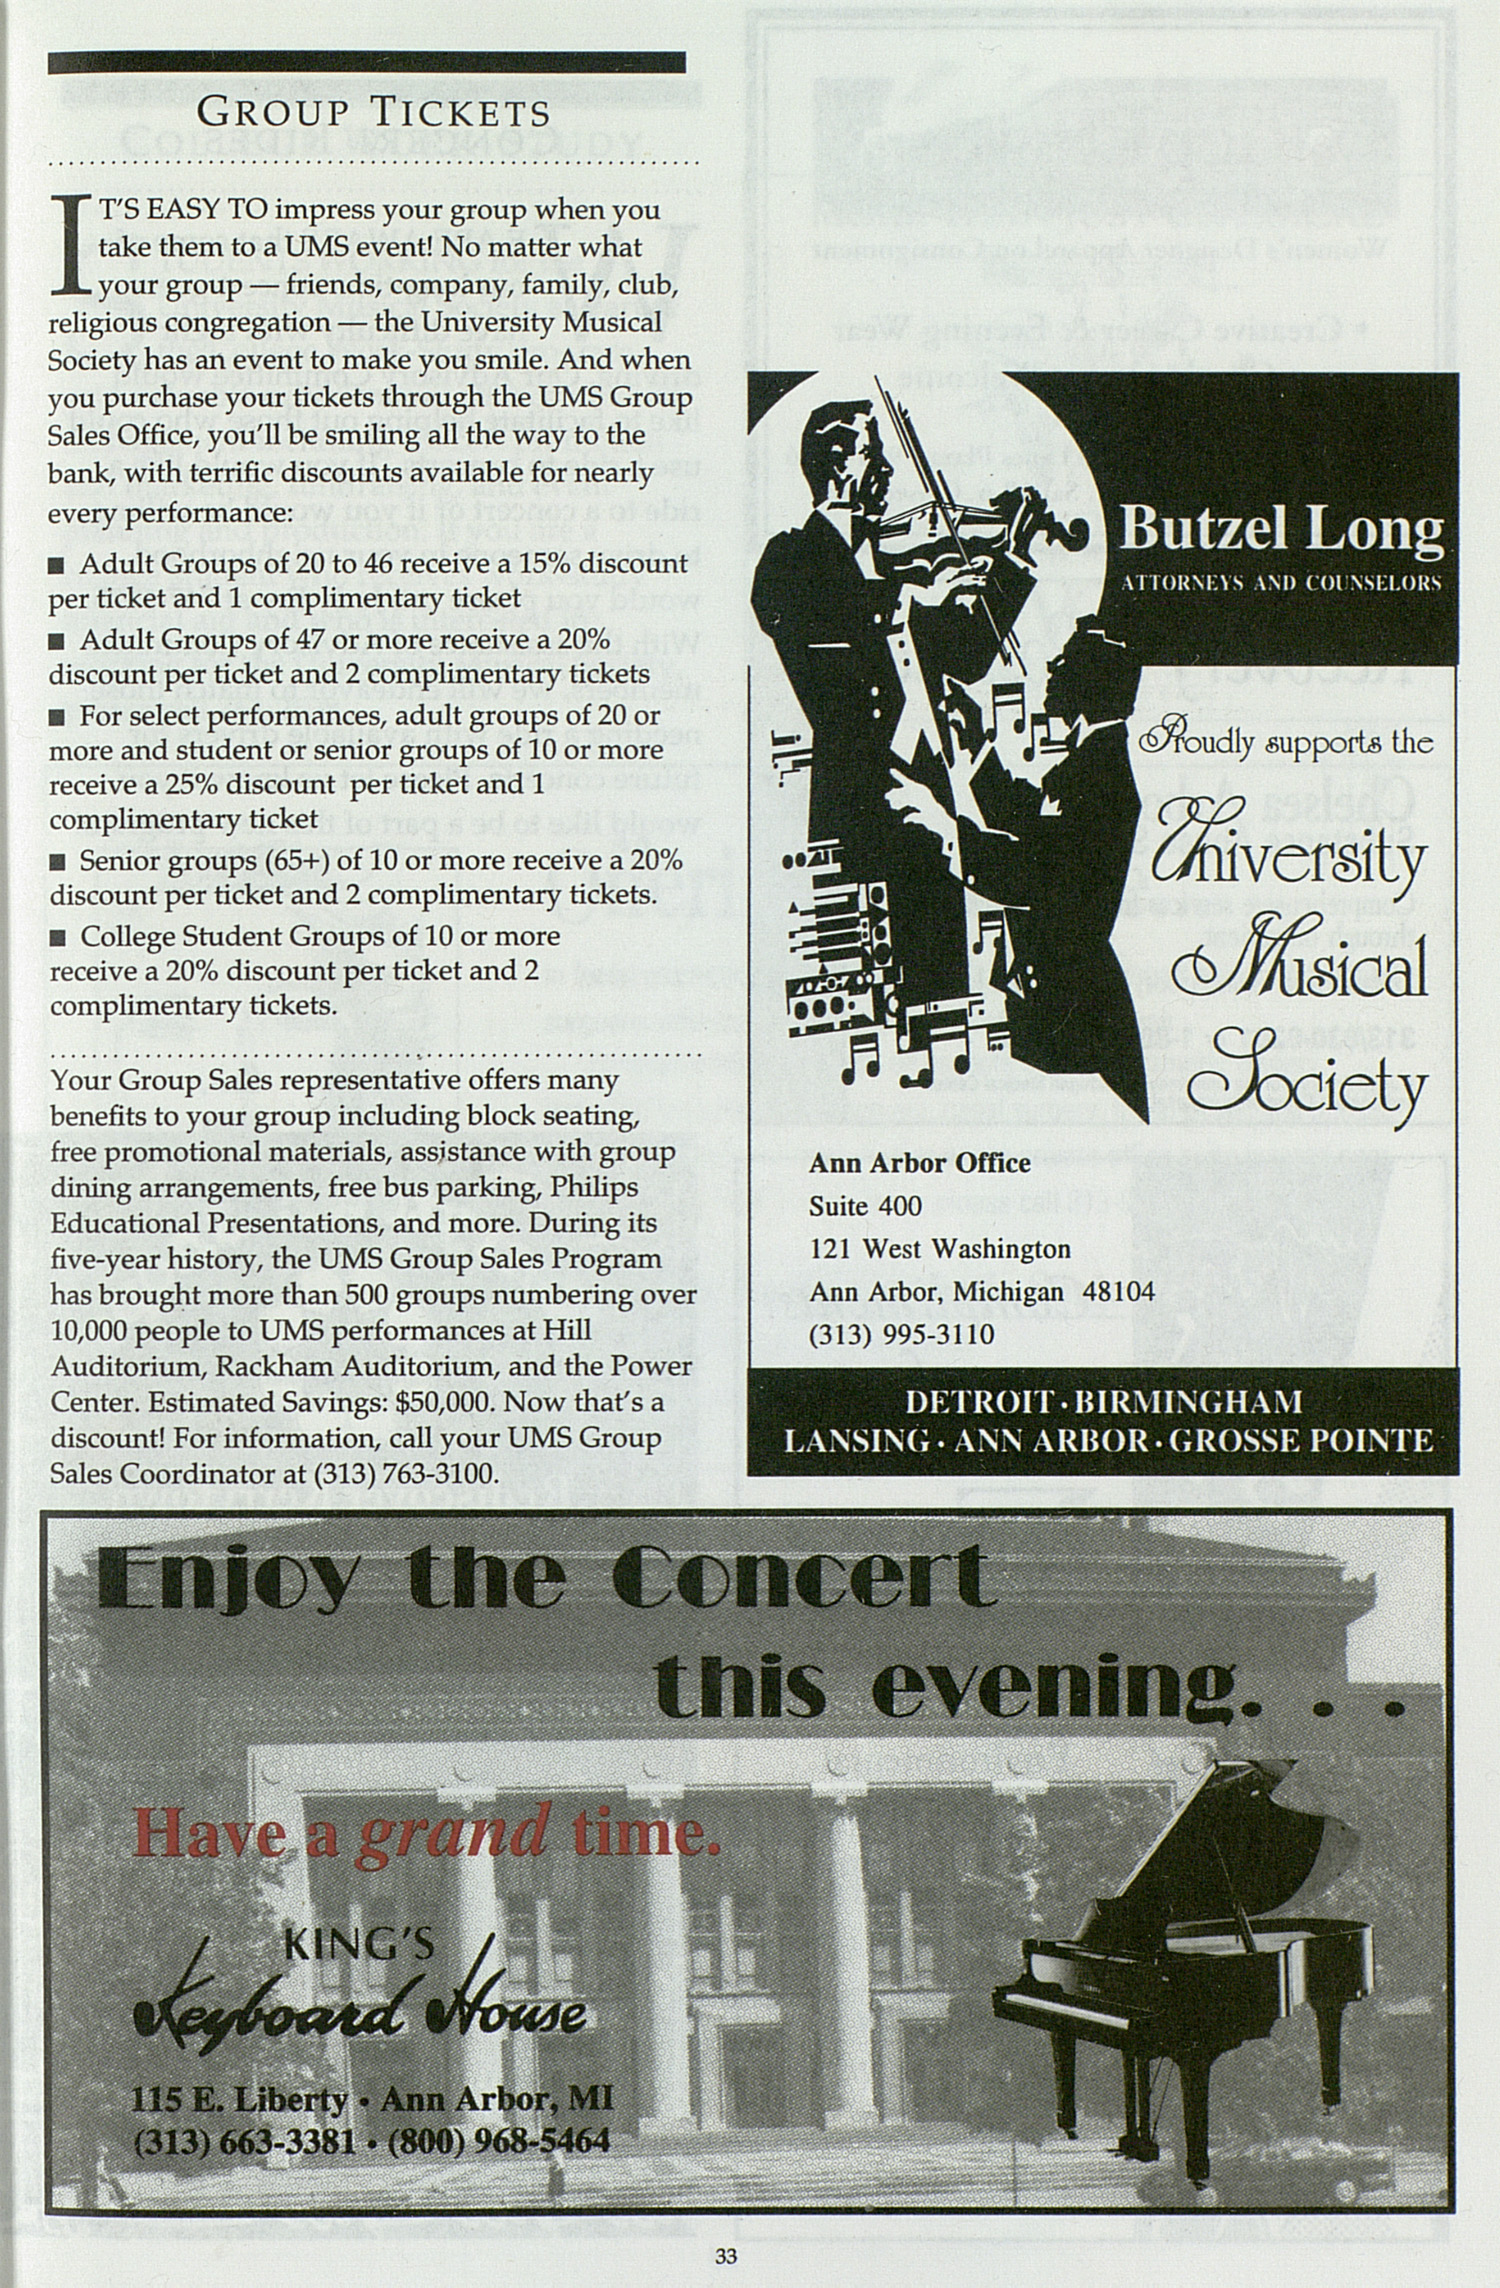 UMS Concert Program, Saturday Mar. 11 To 20: University Musical Society: 1994-1995 Winter - Saturday Mar. 11 To 20 --  image